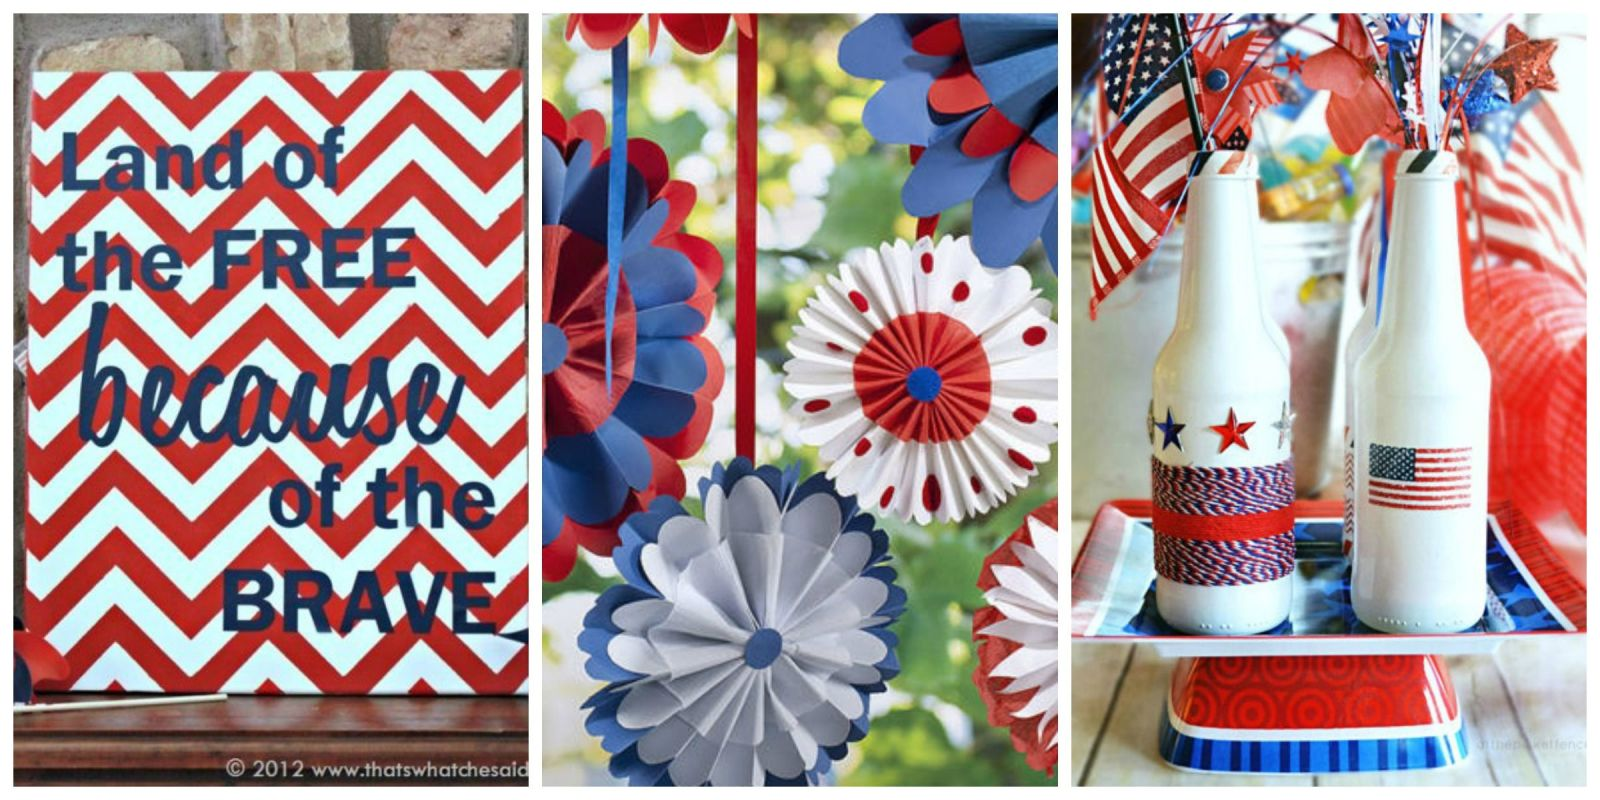 26 Easy 4th Of July Crafts Patriotic Craft Ideas amp DIY